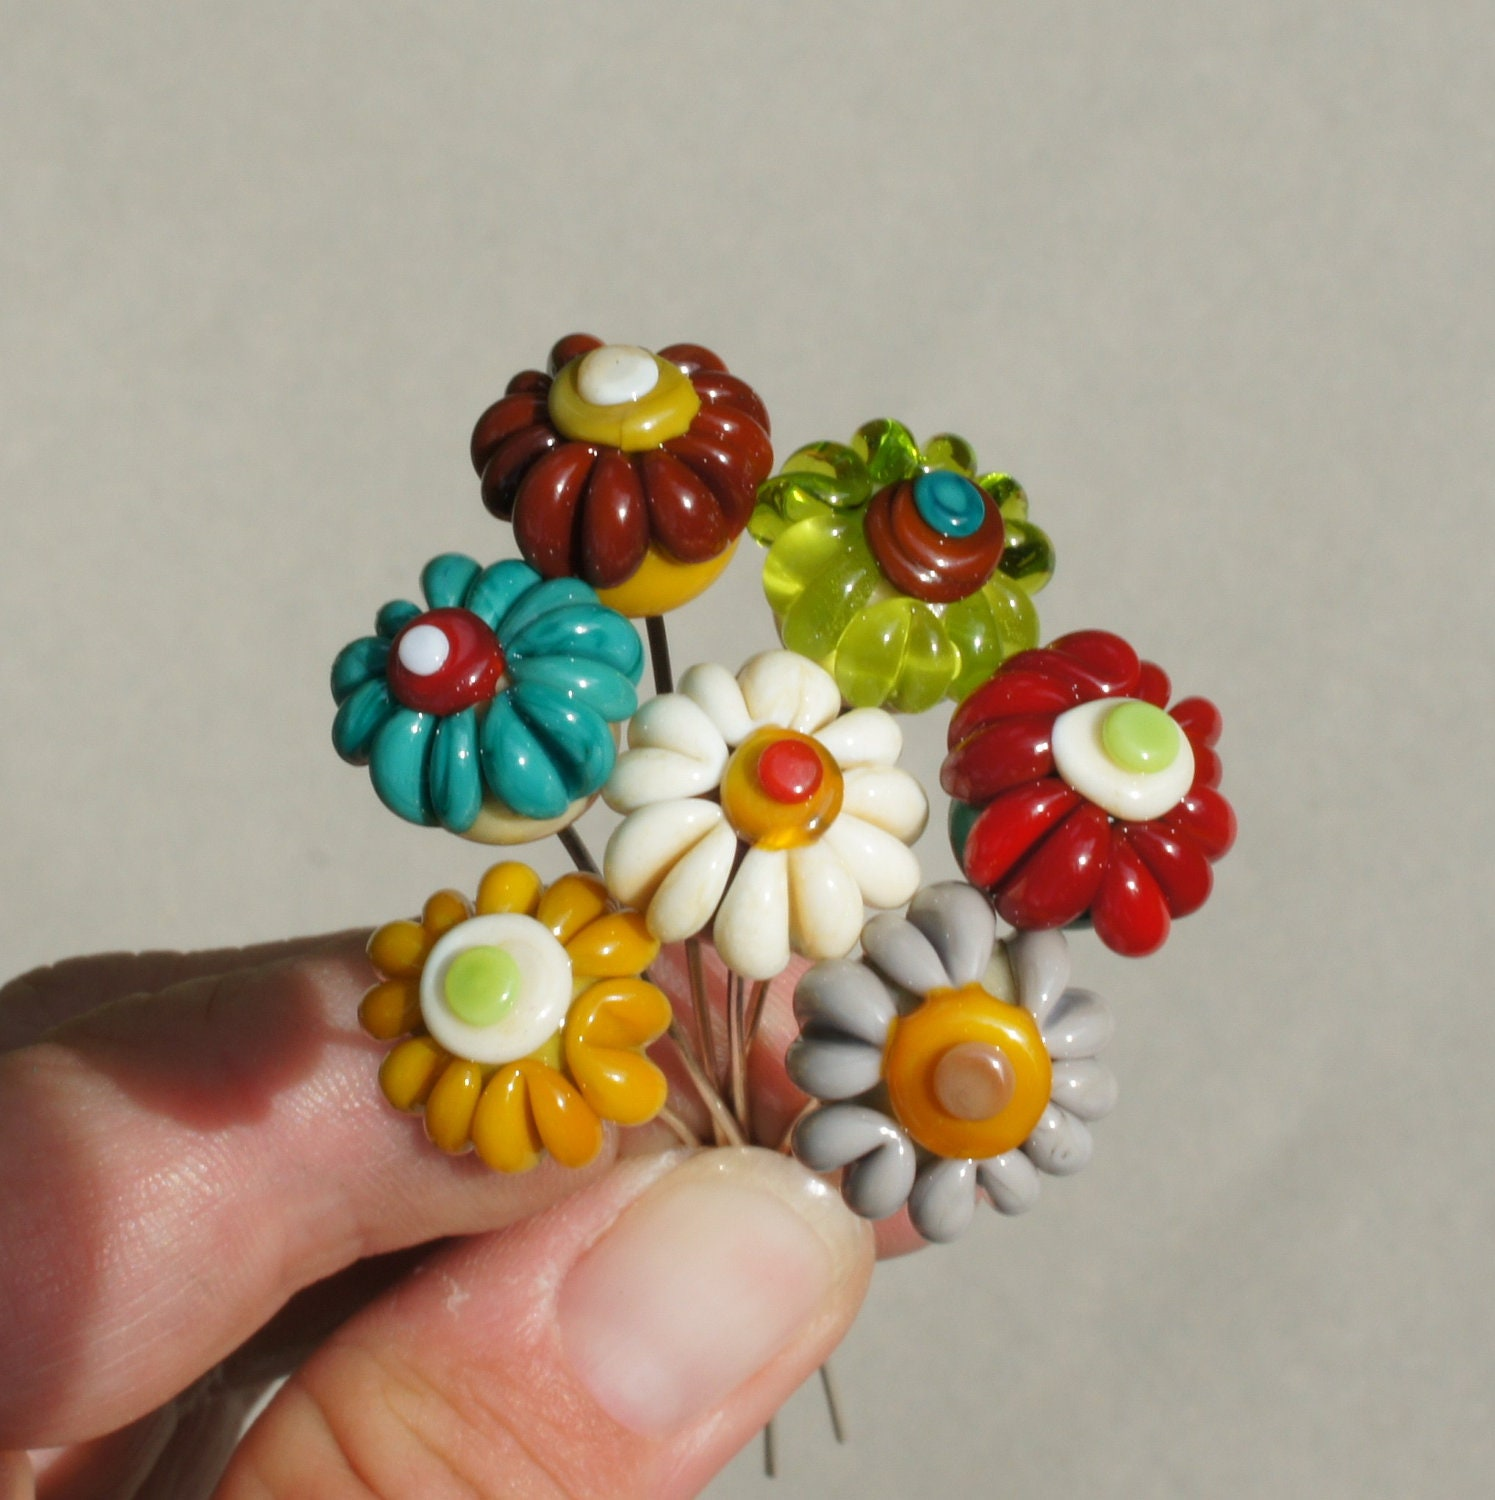 Handmade lampwork glass flower headpins in autumn colors by Flamejewels - FlameJewels